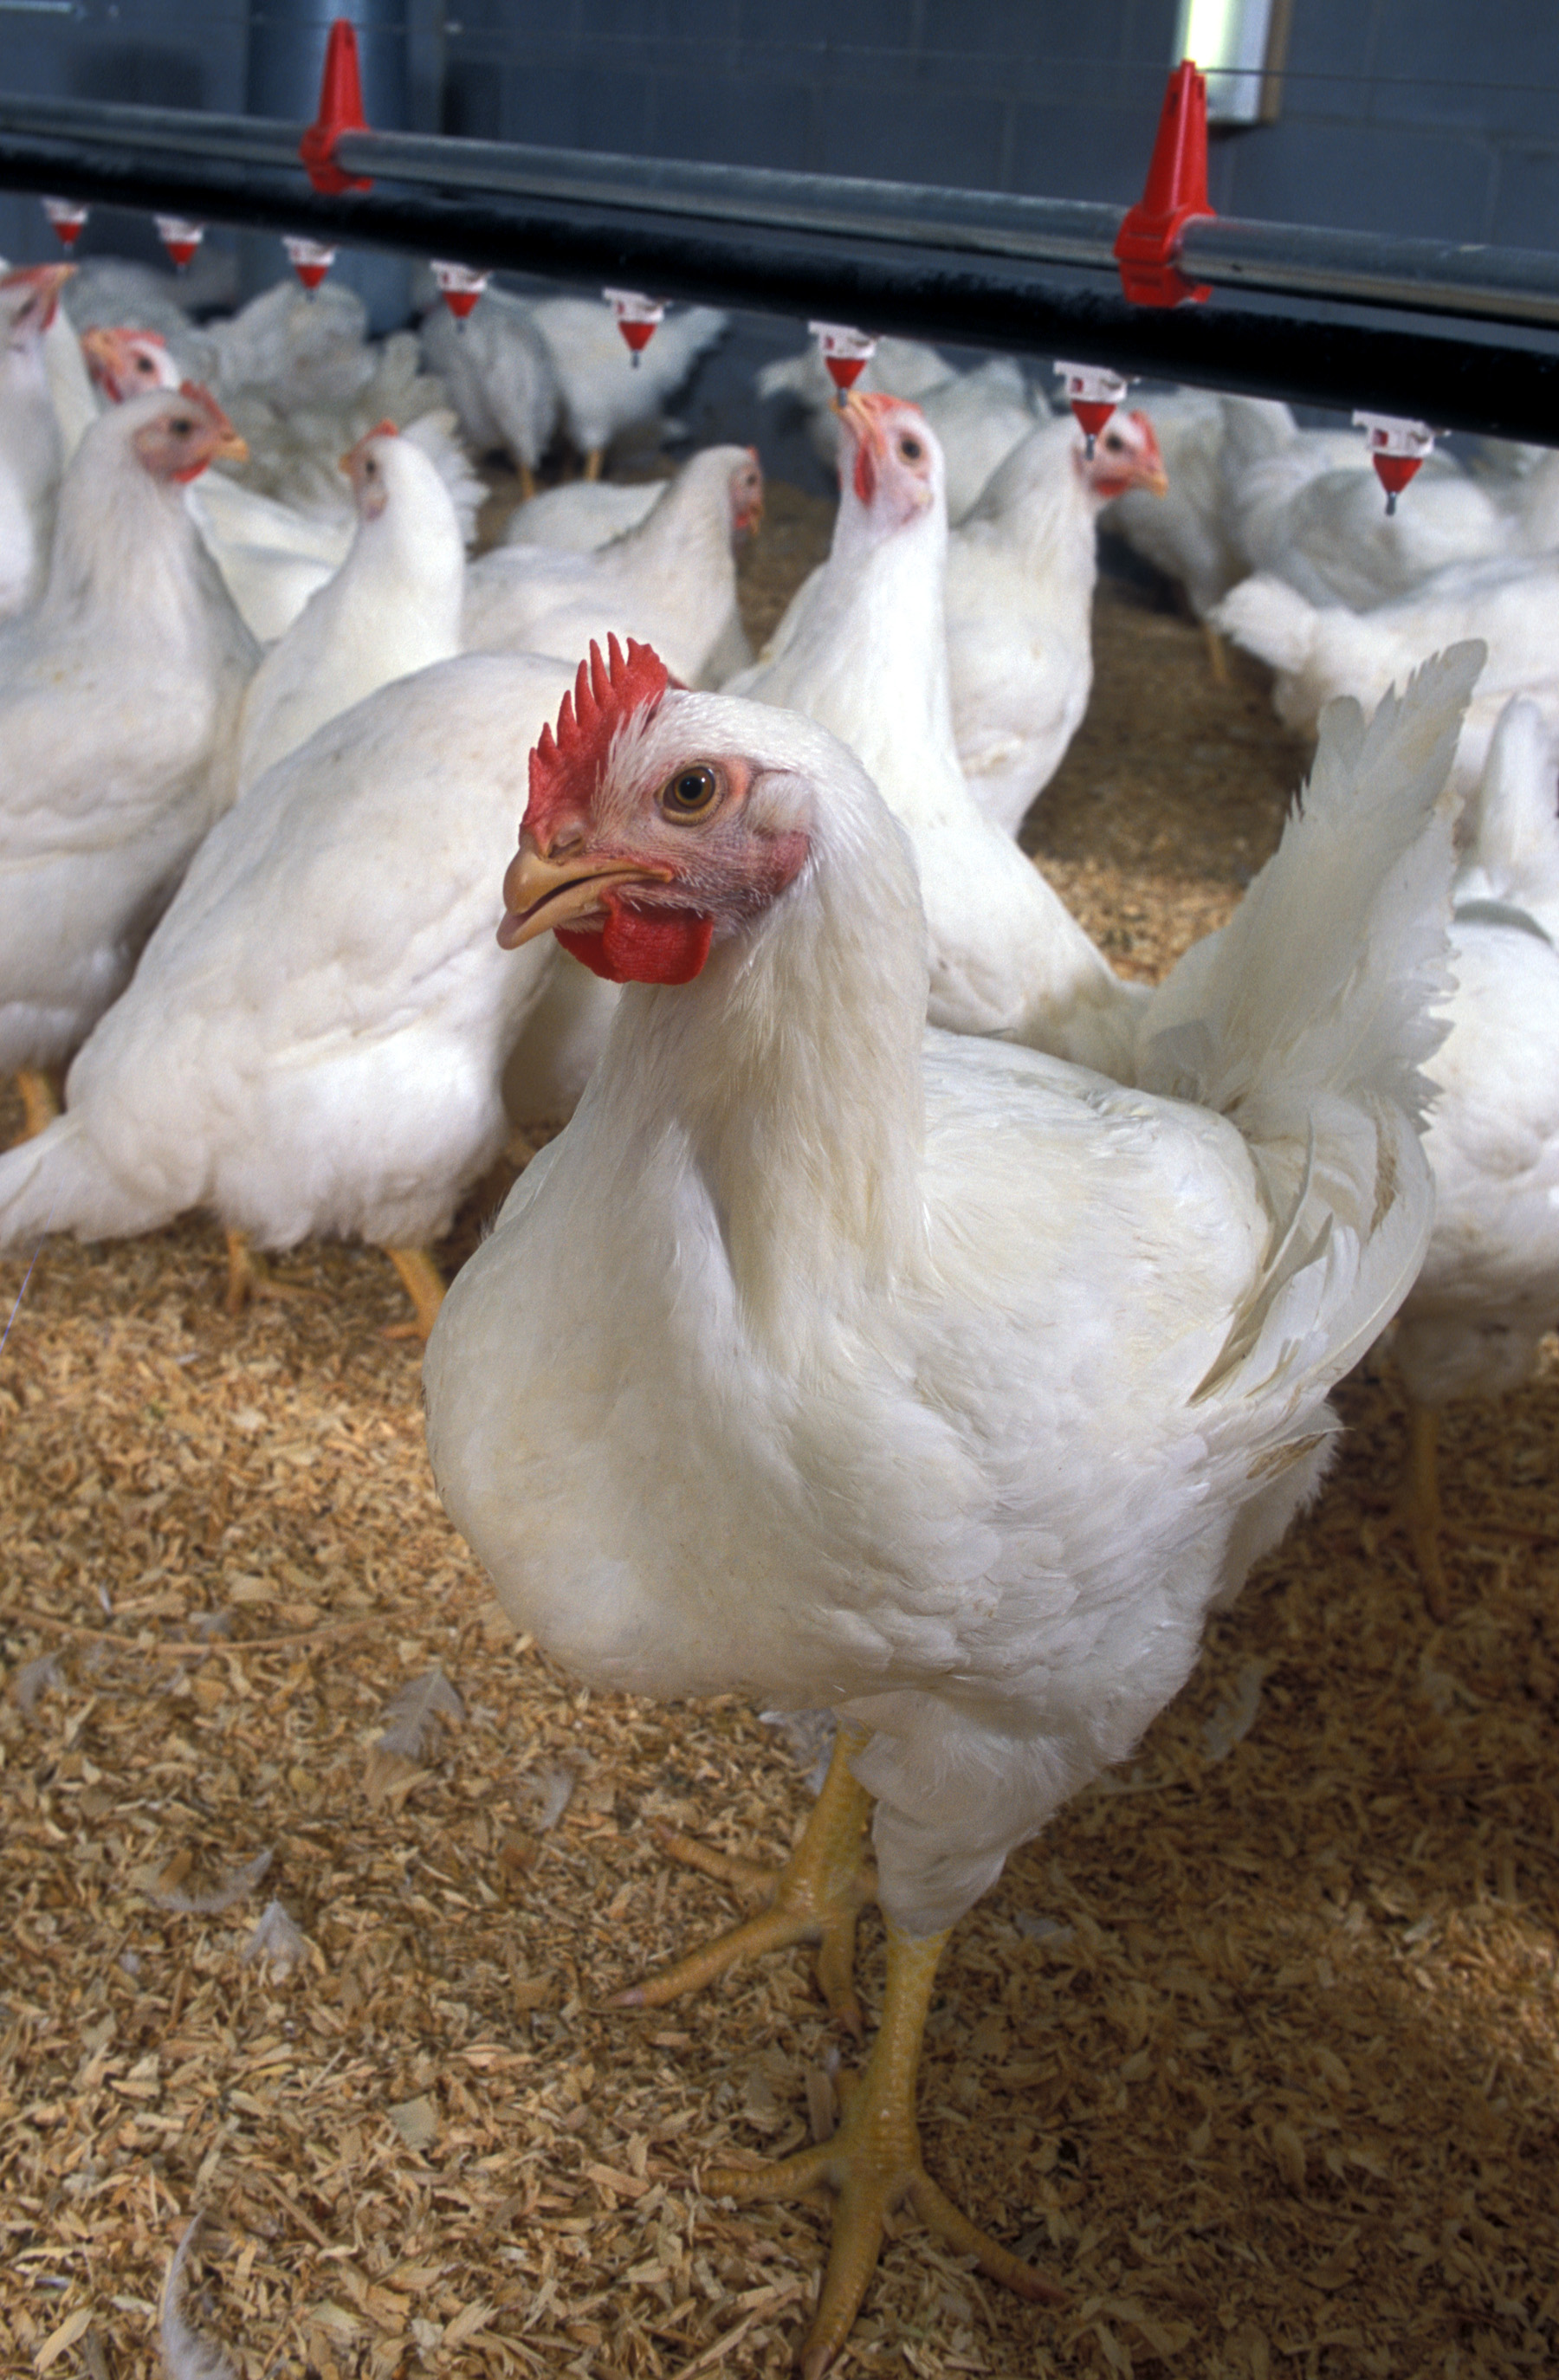 Mexico Lifts Poultry Ban Stemming from Avian Influenza